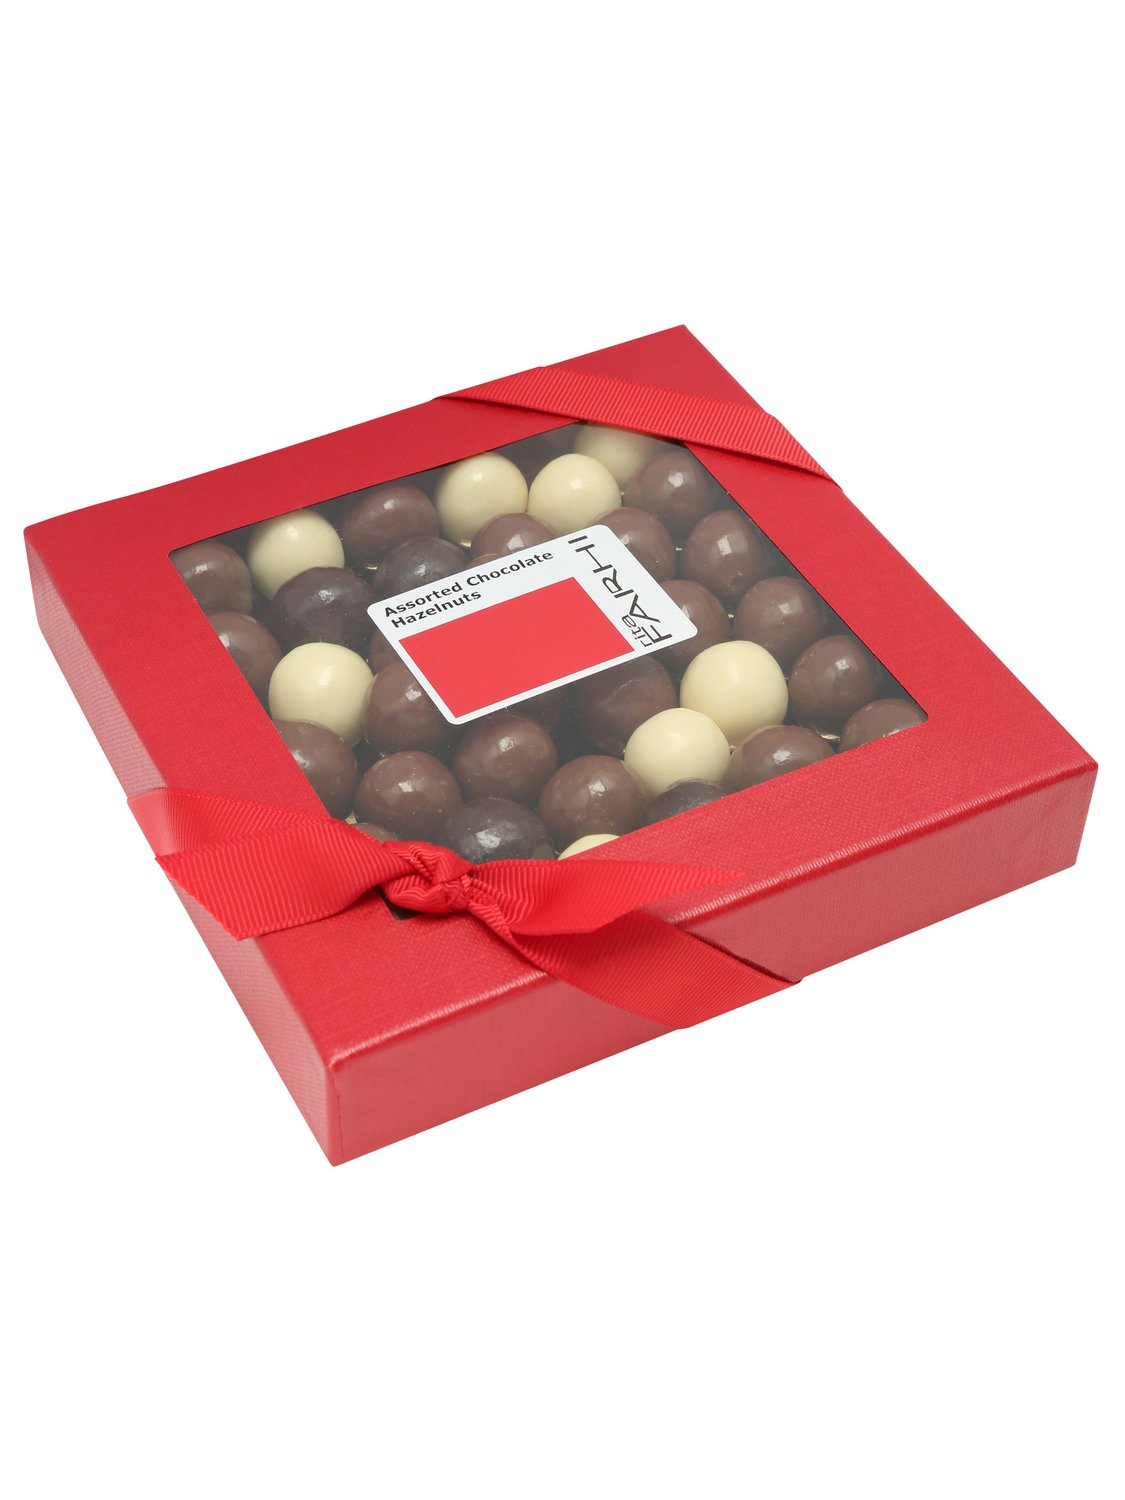 rita farhi chocolate hazelnut box  - red